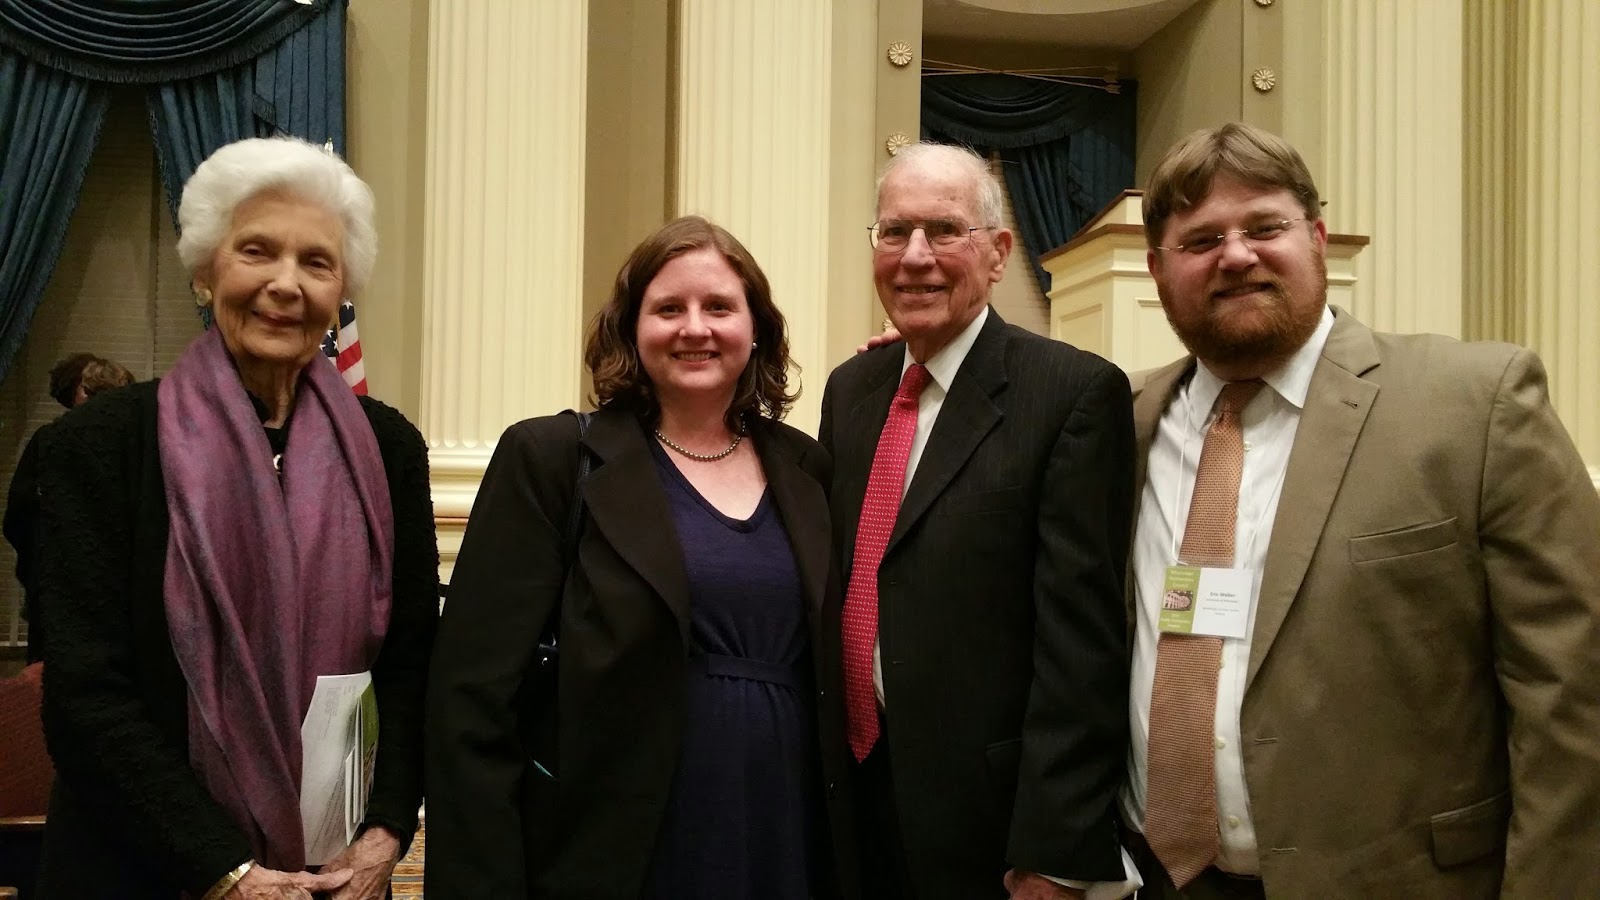 Photo with Elise Varner Winter, Dr. Annie Davis Weber, Governor William Winter, and Dr. Eric Thomas Weber